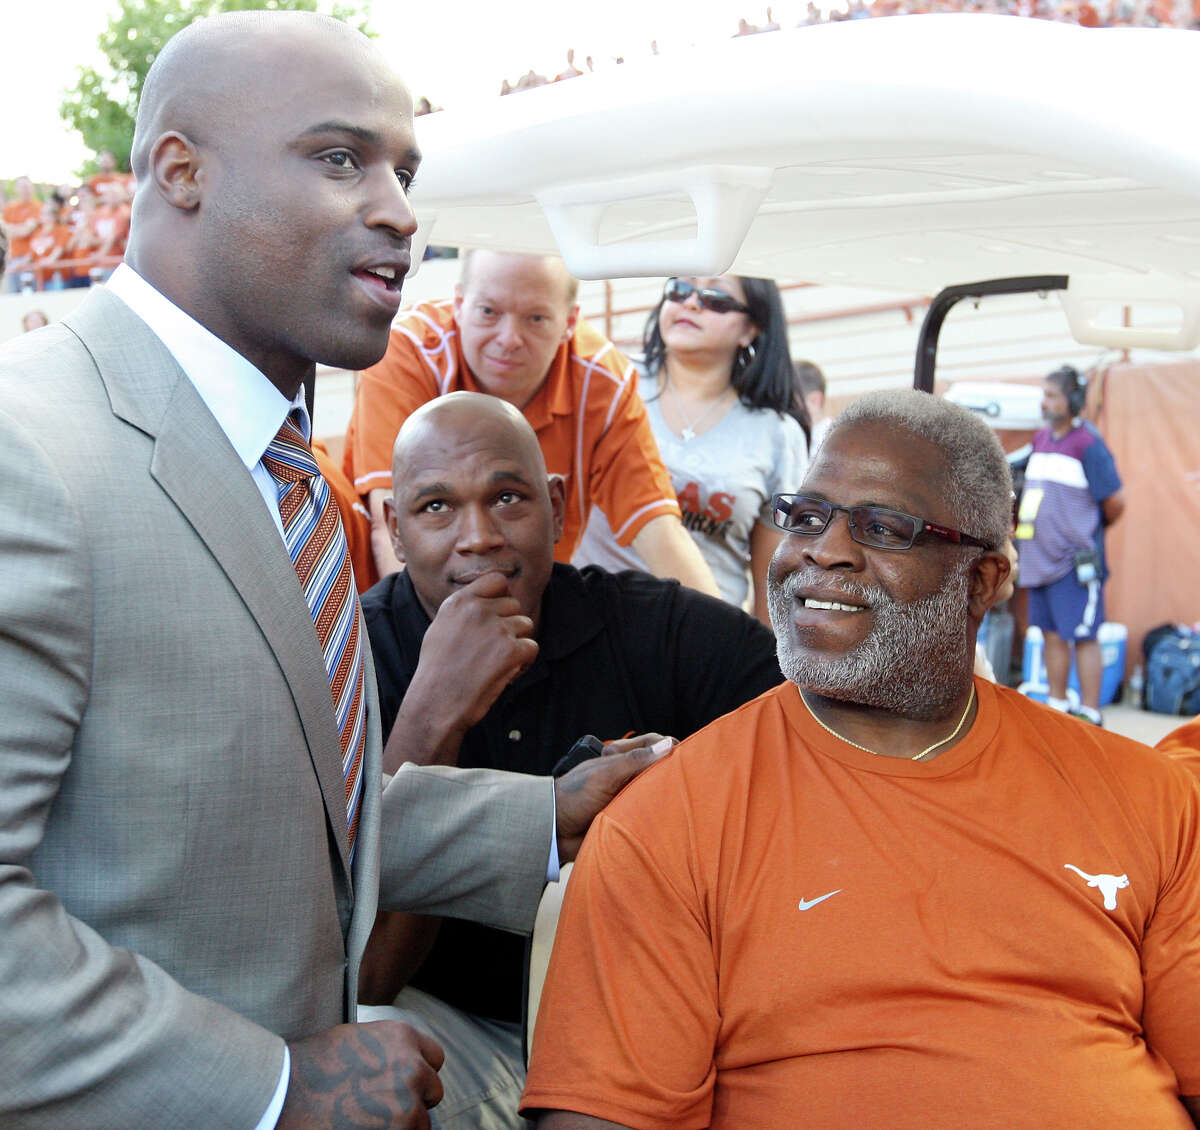 Among the changes UT announced Monday was the renaming of the football field after Heisman Trophy winners Ricky Williams (left) and Earl Campbell.